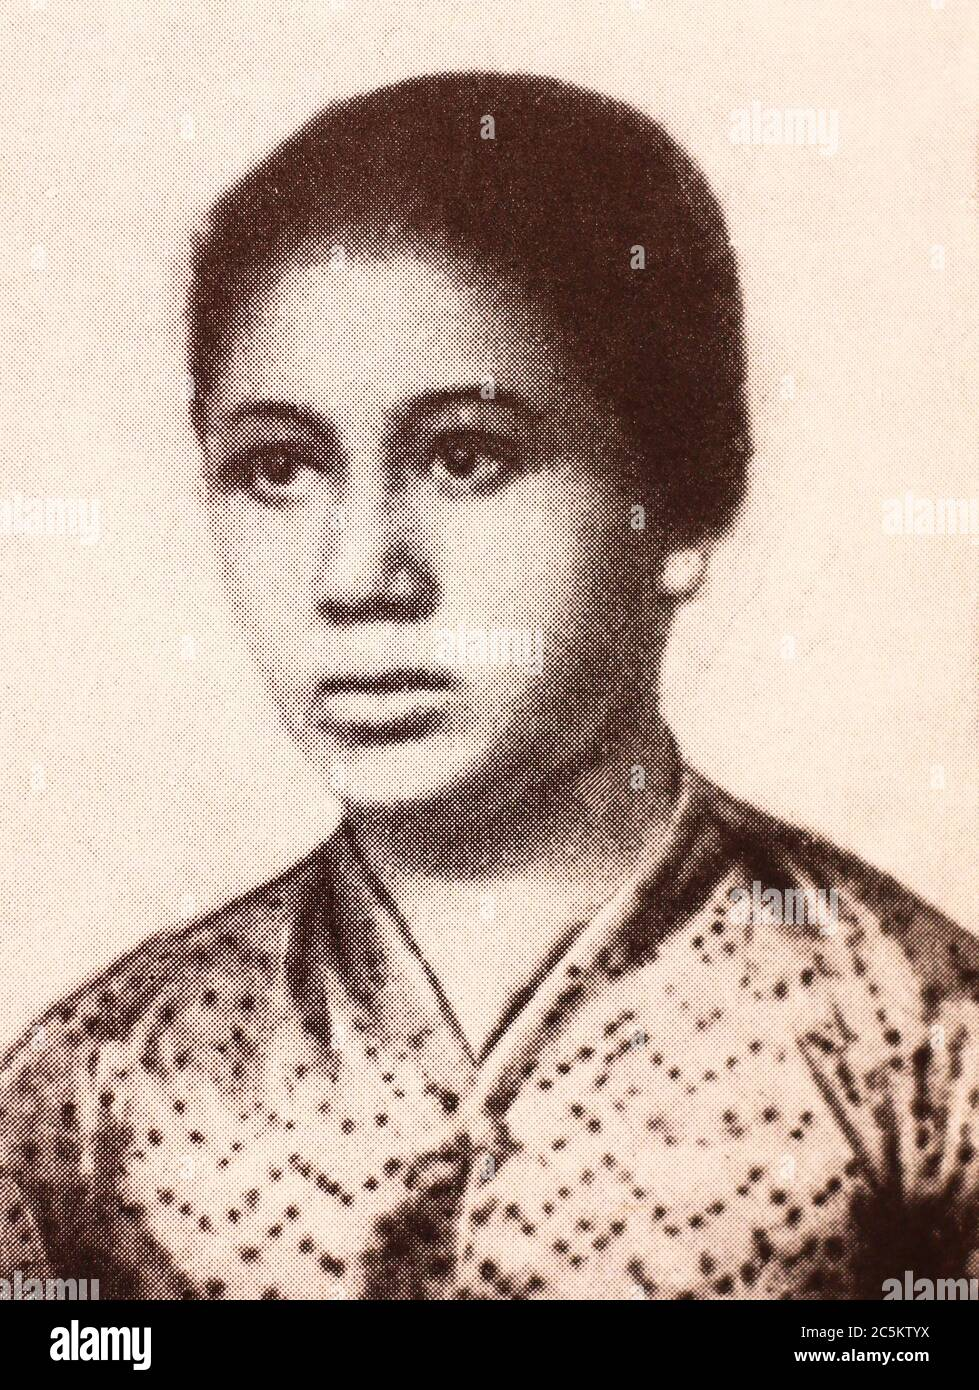 kartini high resolution stock photography and images alamy https www alamy com raden ajeng kartini photo of the beginning of the 20th century raden adjeng kartini 21 april 1879 17 september 1904 sometimes known as raden ayu kartini was a prominent indonesian national hero from java she was a pioneer in the area of education for girls and womens rights for indonesians image364927694 html